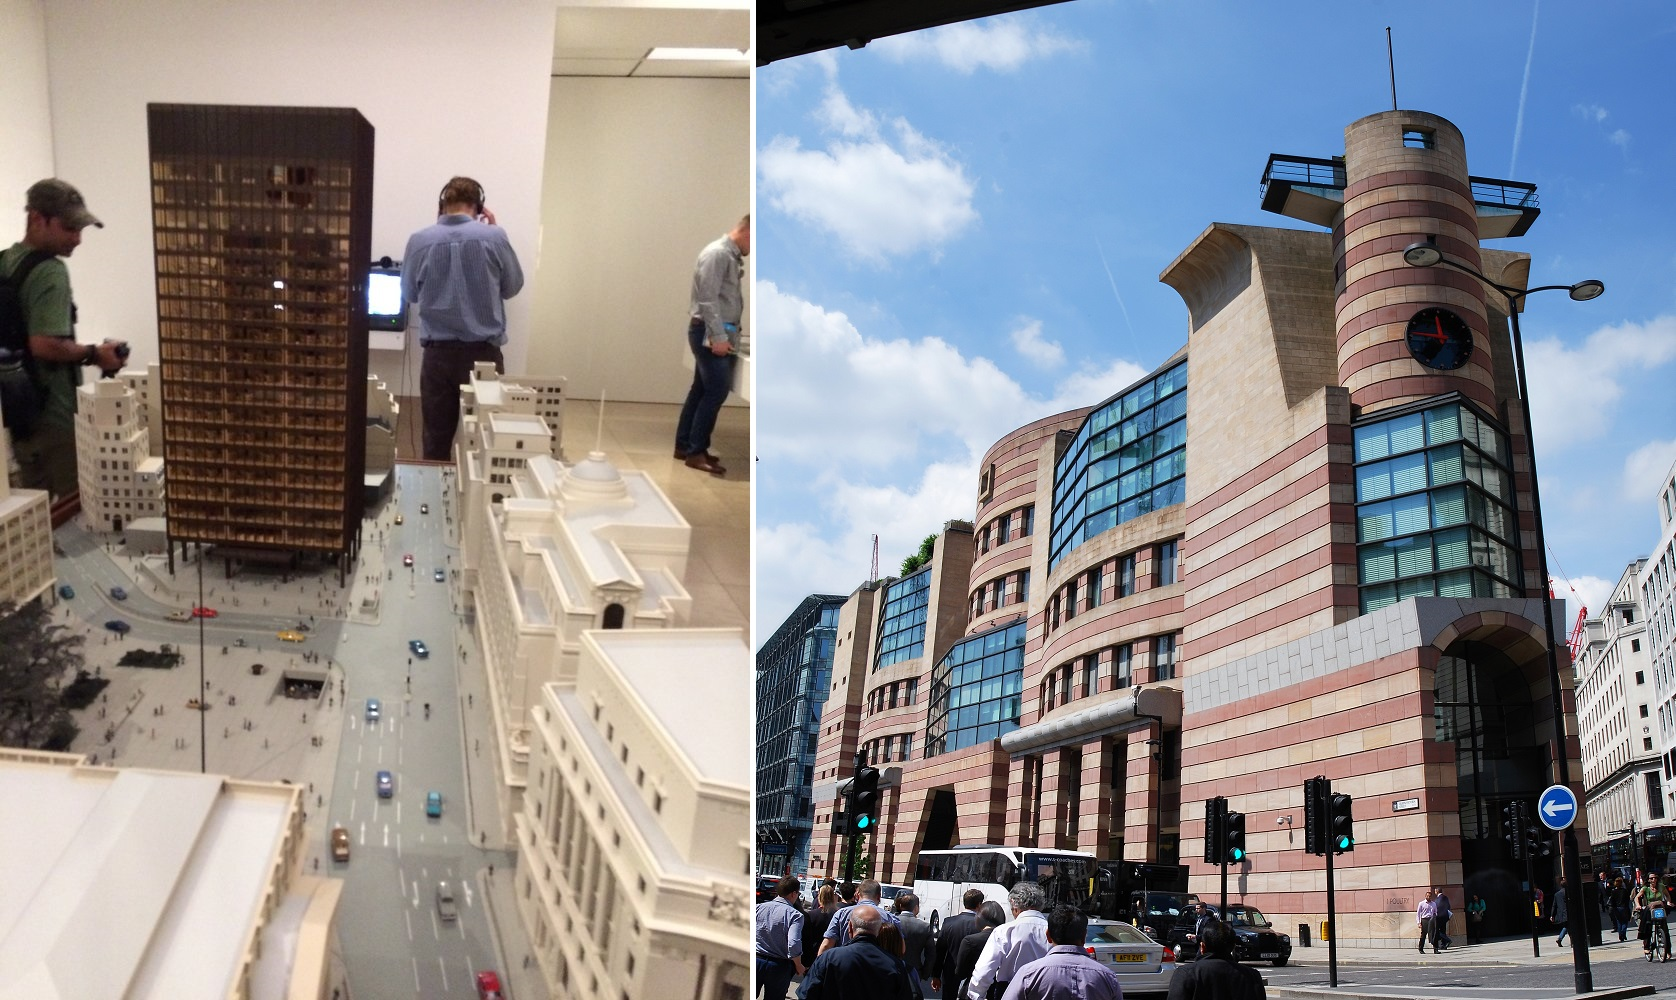 Left: RIBA exhibit. Right: Number One Poultry. Photos by Anthony Denzer